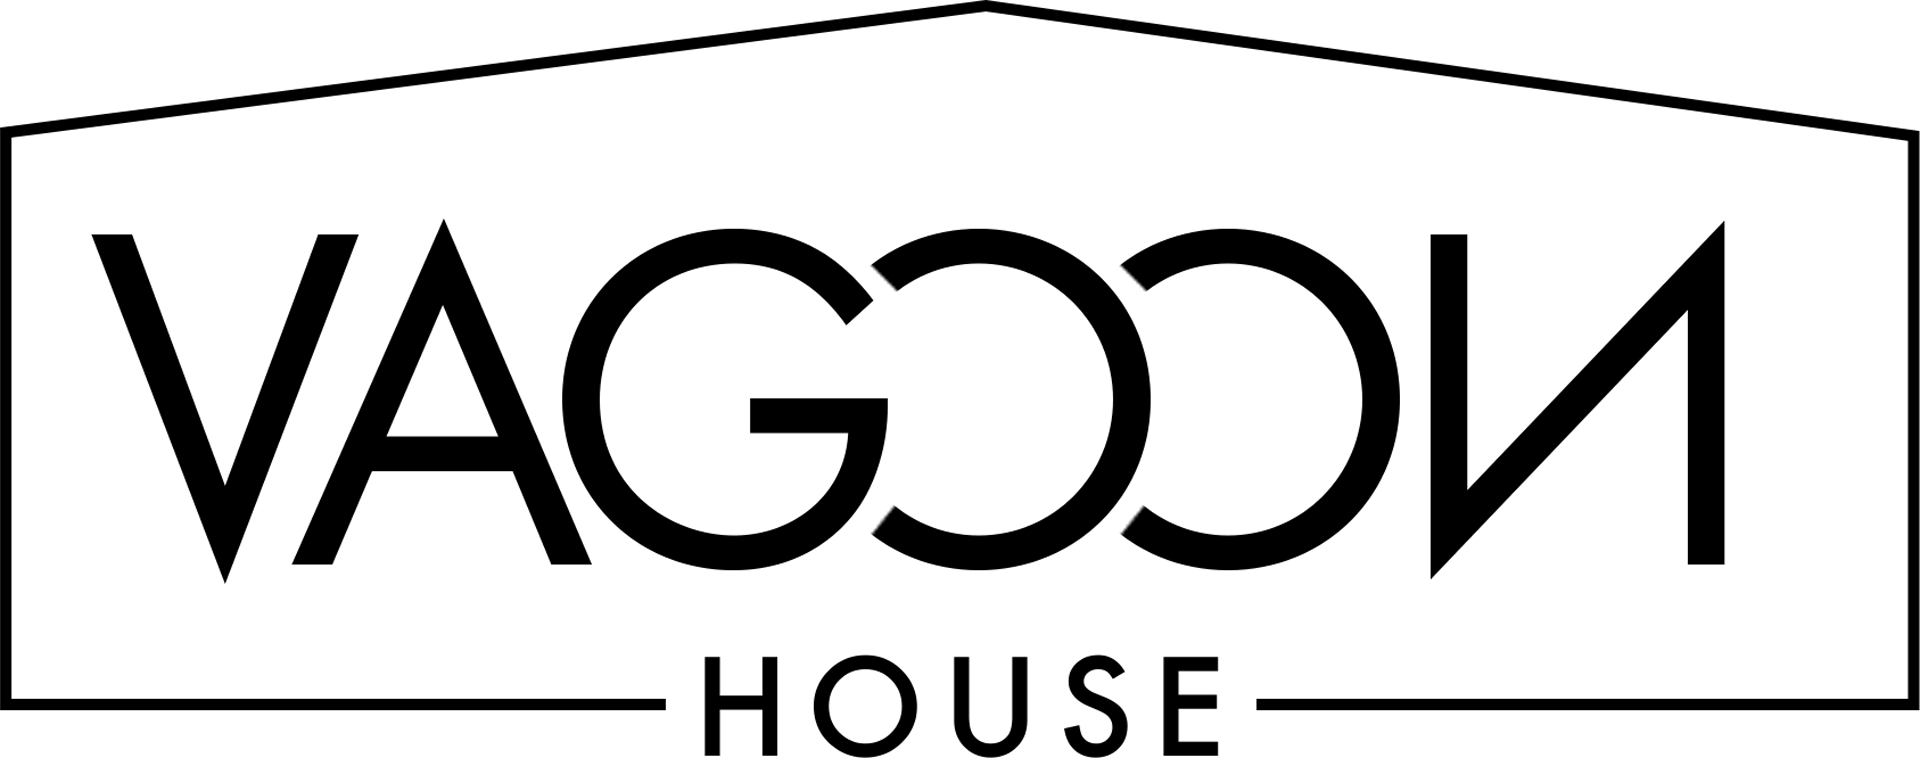 vagoonhouse-black-logo